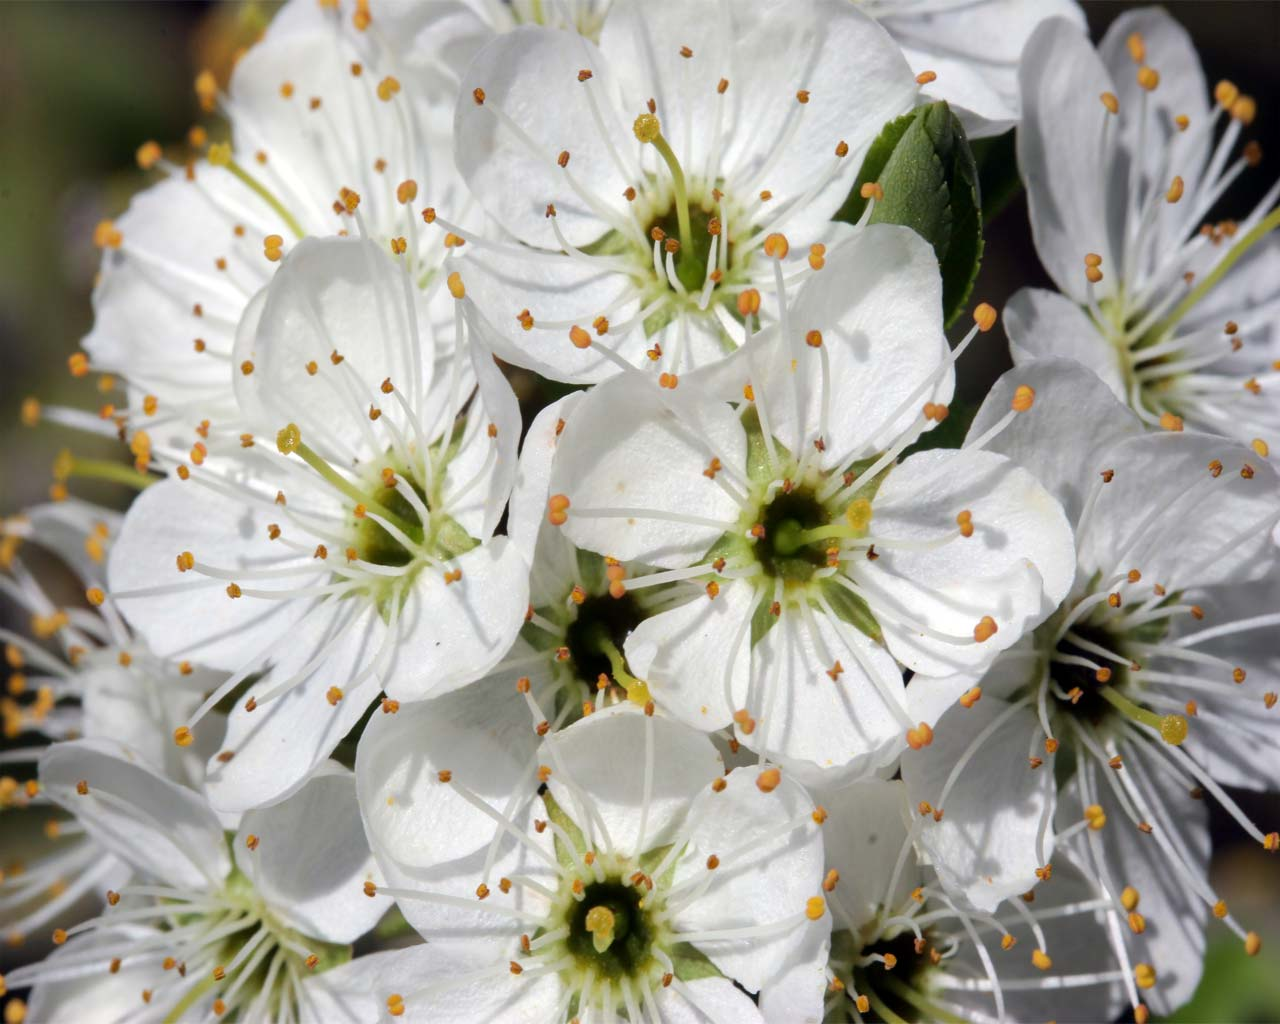 Hawthorn Blossom Flower Wallpaper: Desktop HD Wallpapers: The Right Way To Clean Silk Flowers